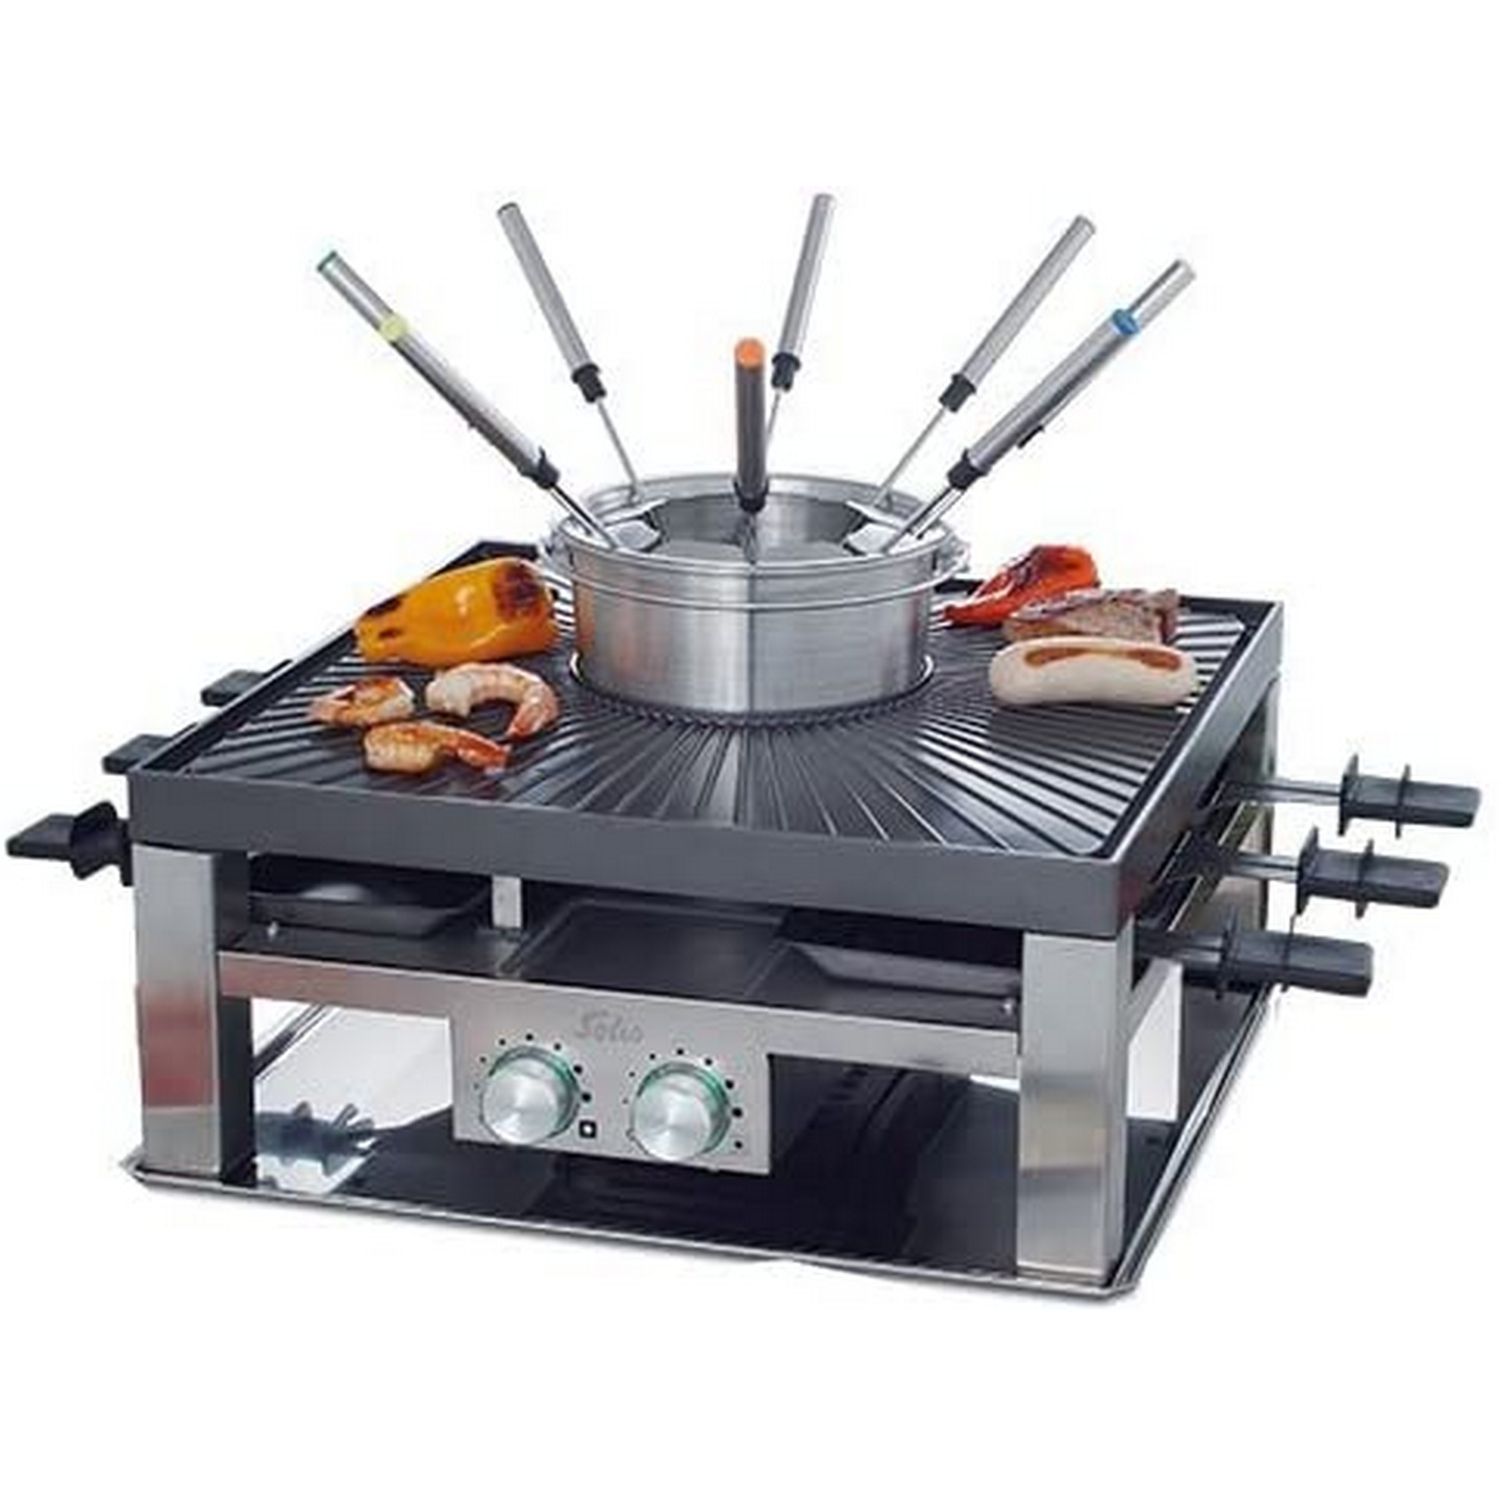 SOLIS Combi-Grill 3 in 1 796 MULTIFUNKTIONS-GRILL 977.21